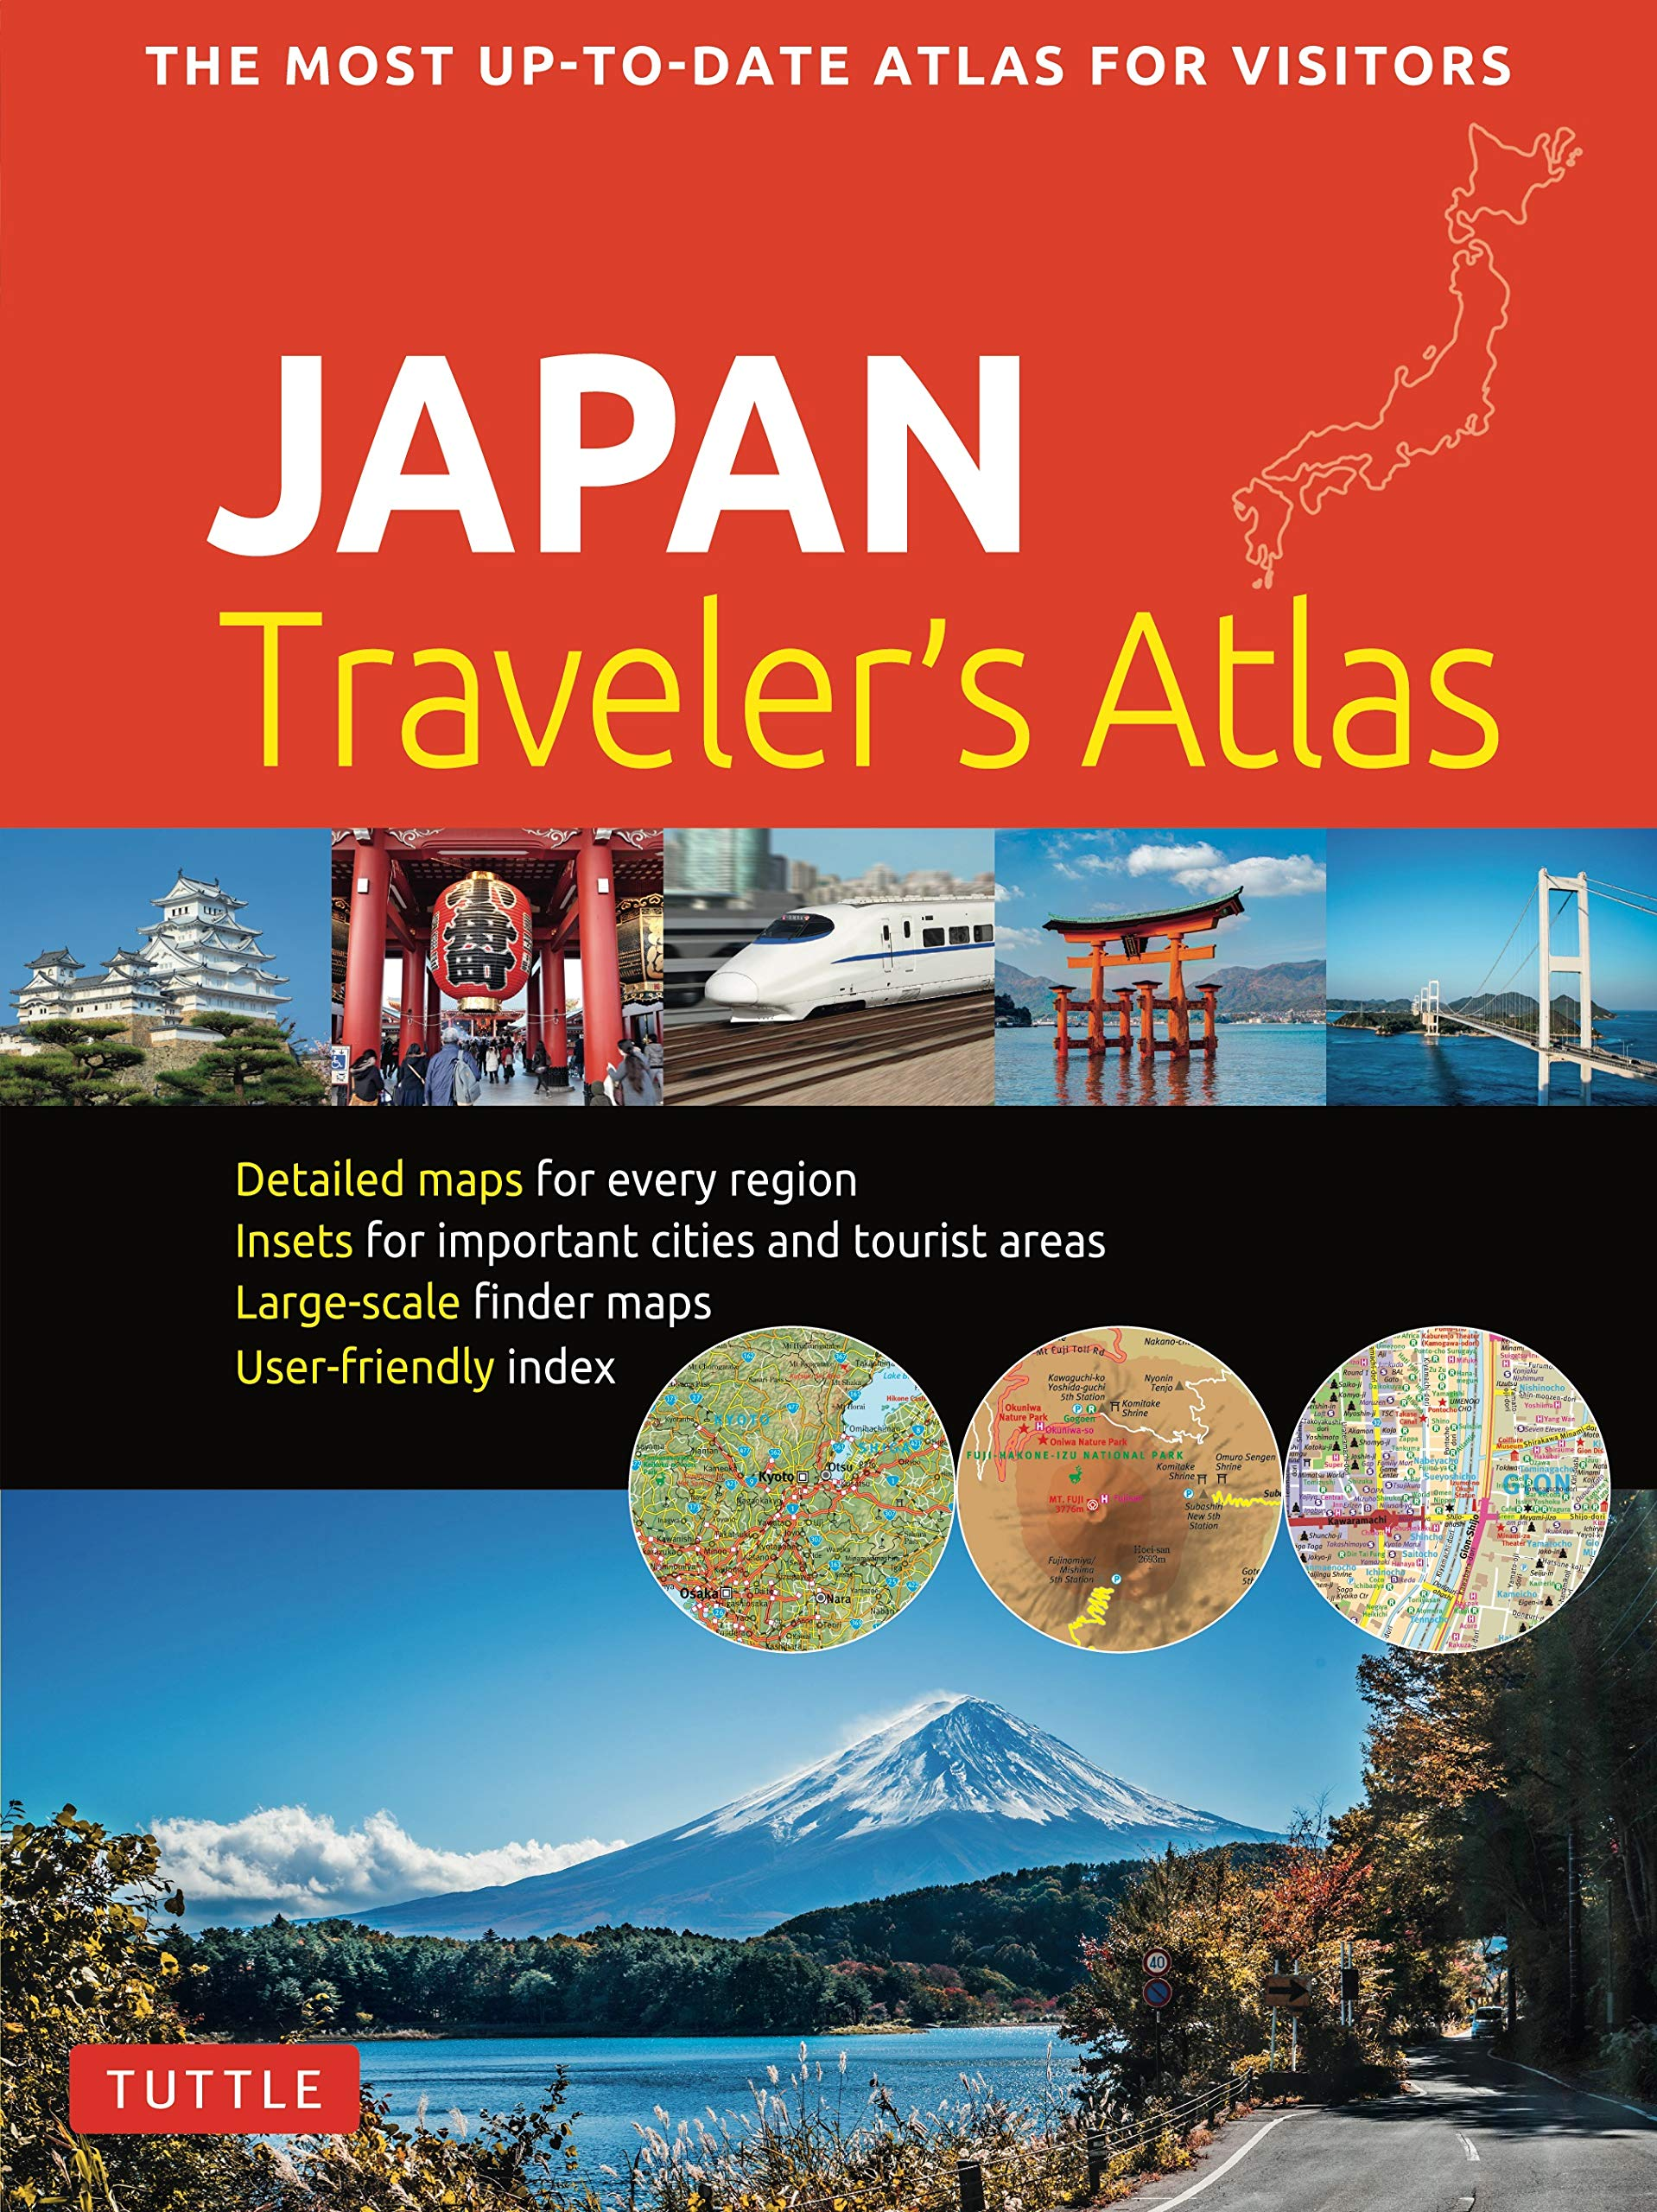 Japan Traveler's Atlas  Japan's Most Up To Date Atlas For Visitors